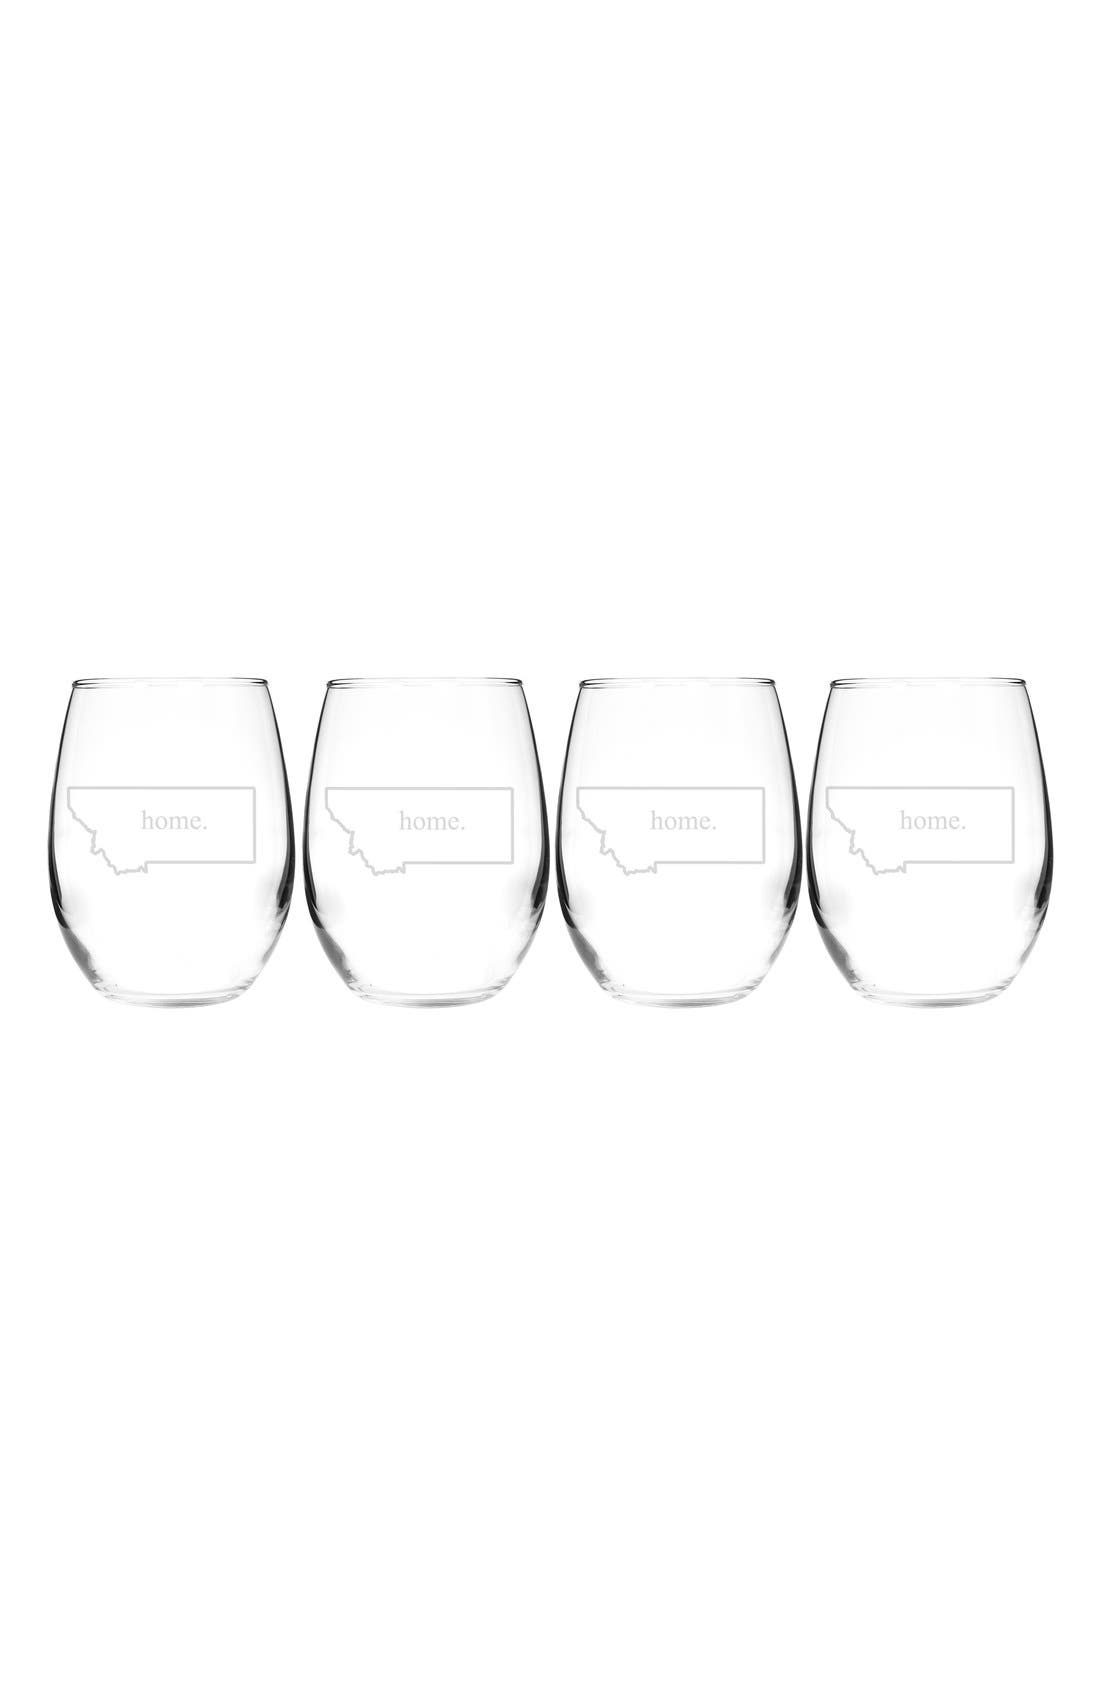 Home State Set of 4 Stemless Wine Glasses,                             Main thumbnail 27, color,